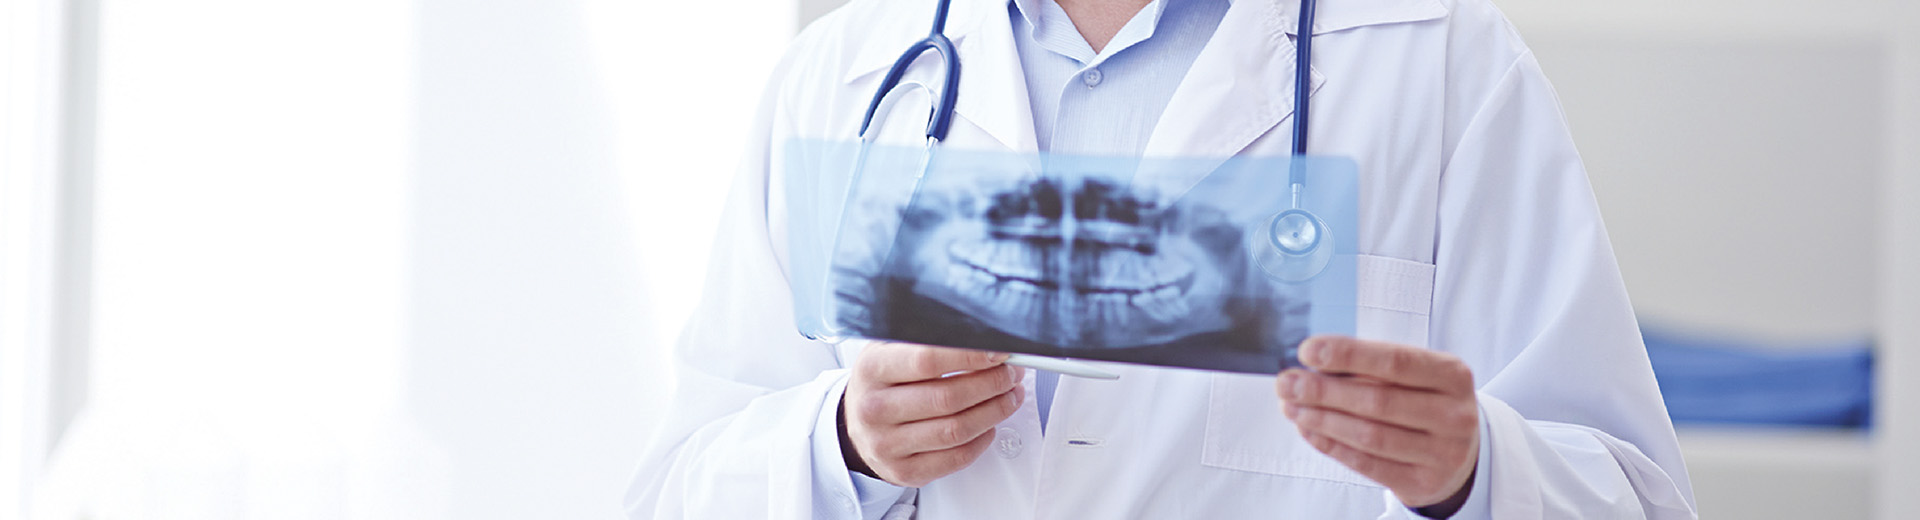 Extraction of wisdom teeth underground – Safe, no pain, fast recovery